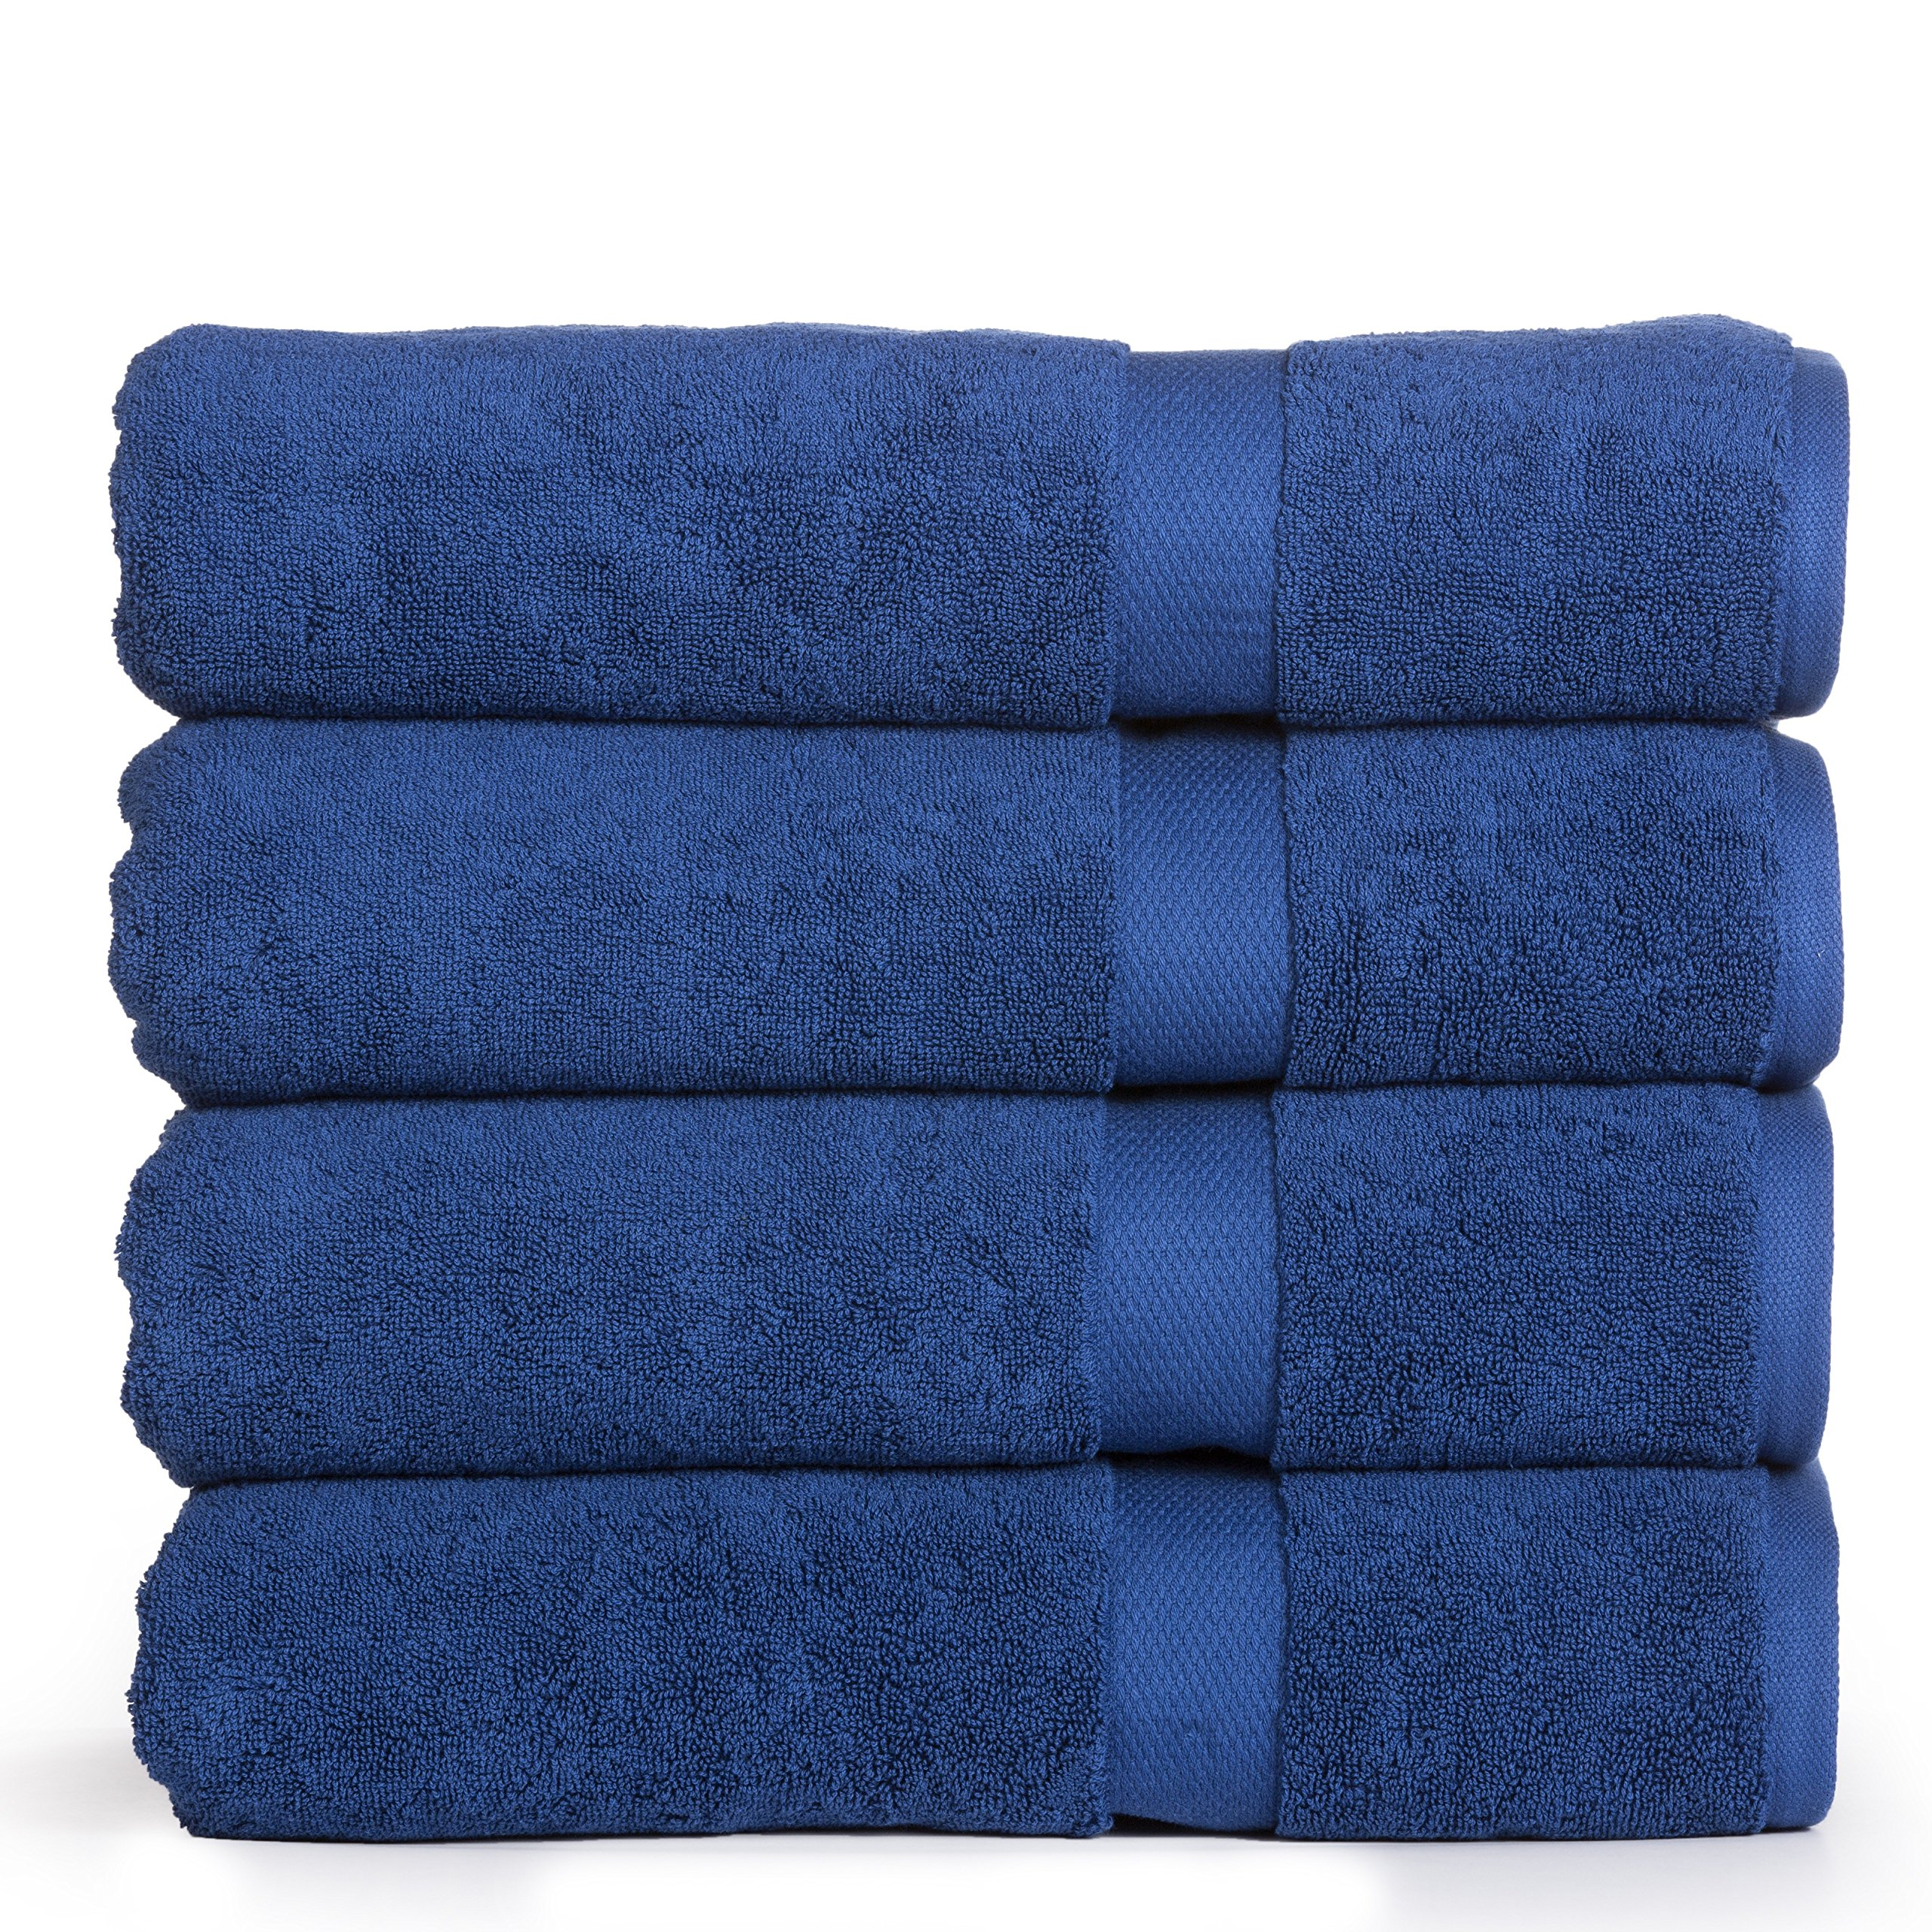 Madhvi Collection 800 GSM Premium Combed Cotton Extra Large 30 x 60 Inch Bath Towels 4 Pack, Oversized and Heavy Bath Towel Set, Hotel and Spa Towels Set With Maximum Softness, High Absorbency (Navy) by Casa Platino (Image #1)